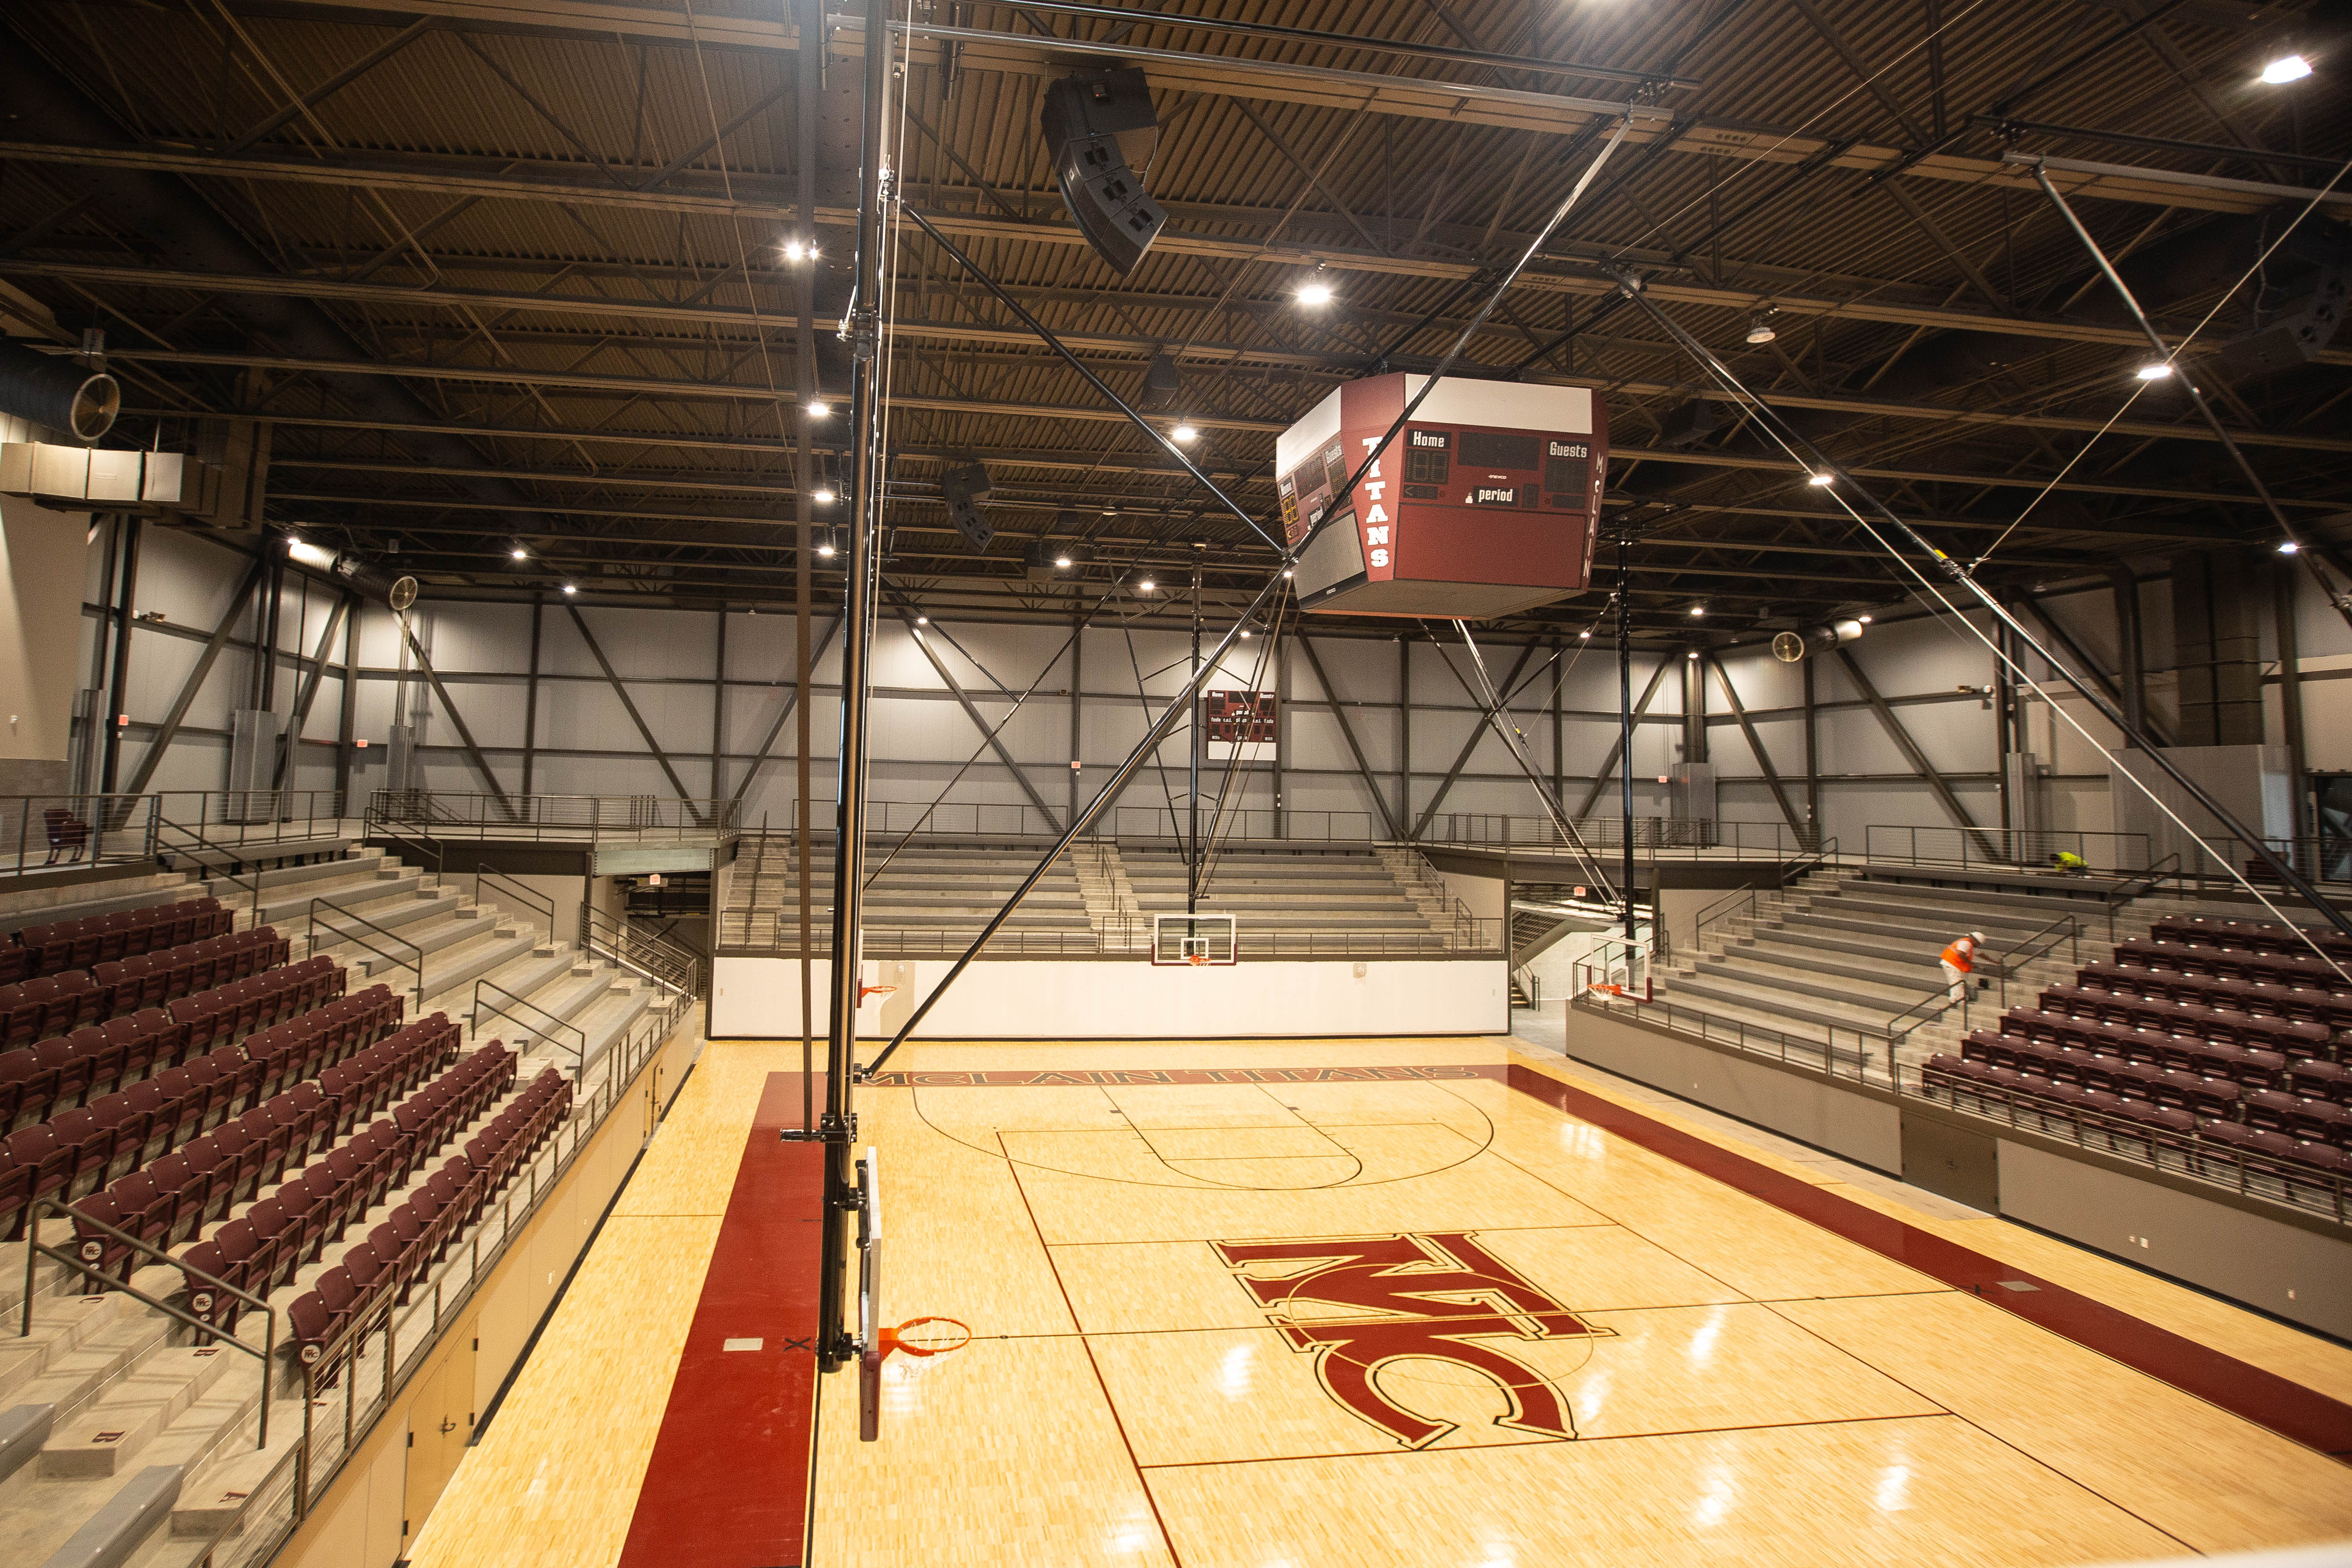 Titan home court